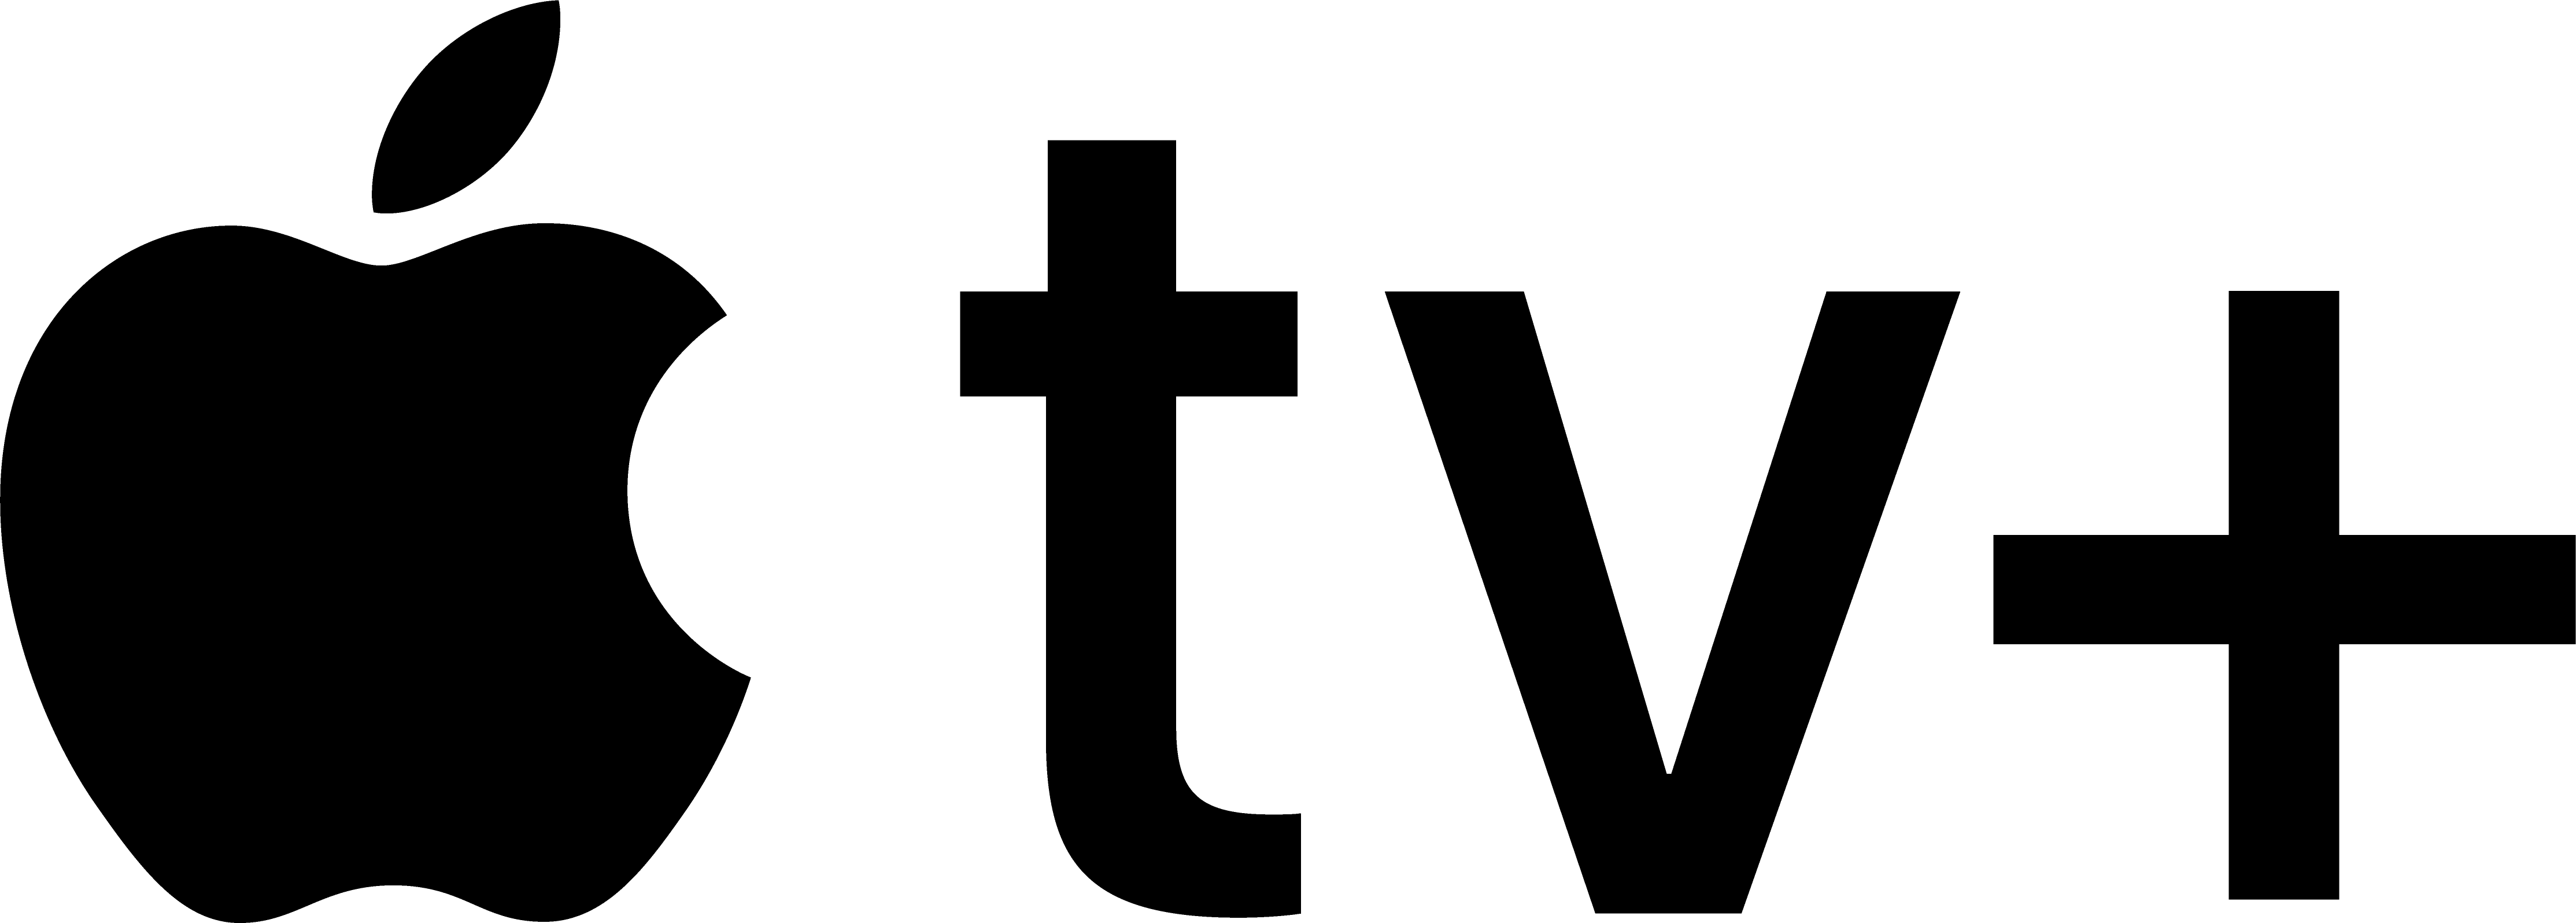 파일:Apple_TV_Plus_Logo.png